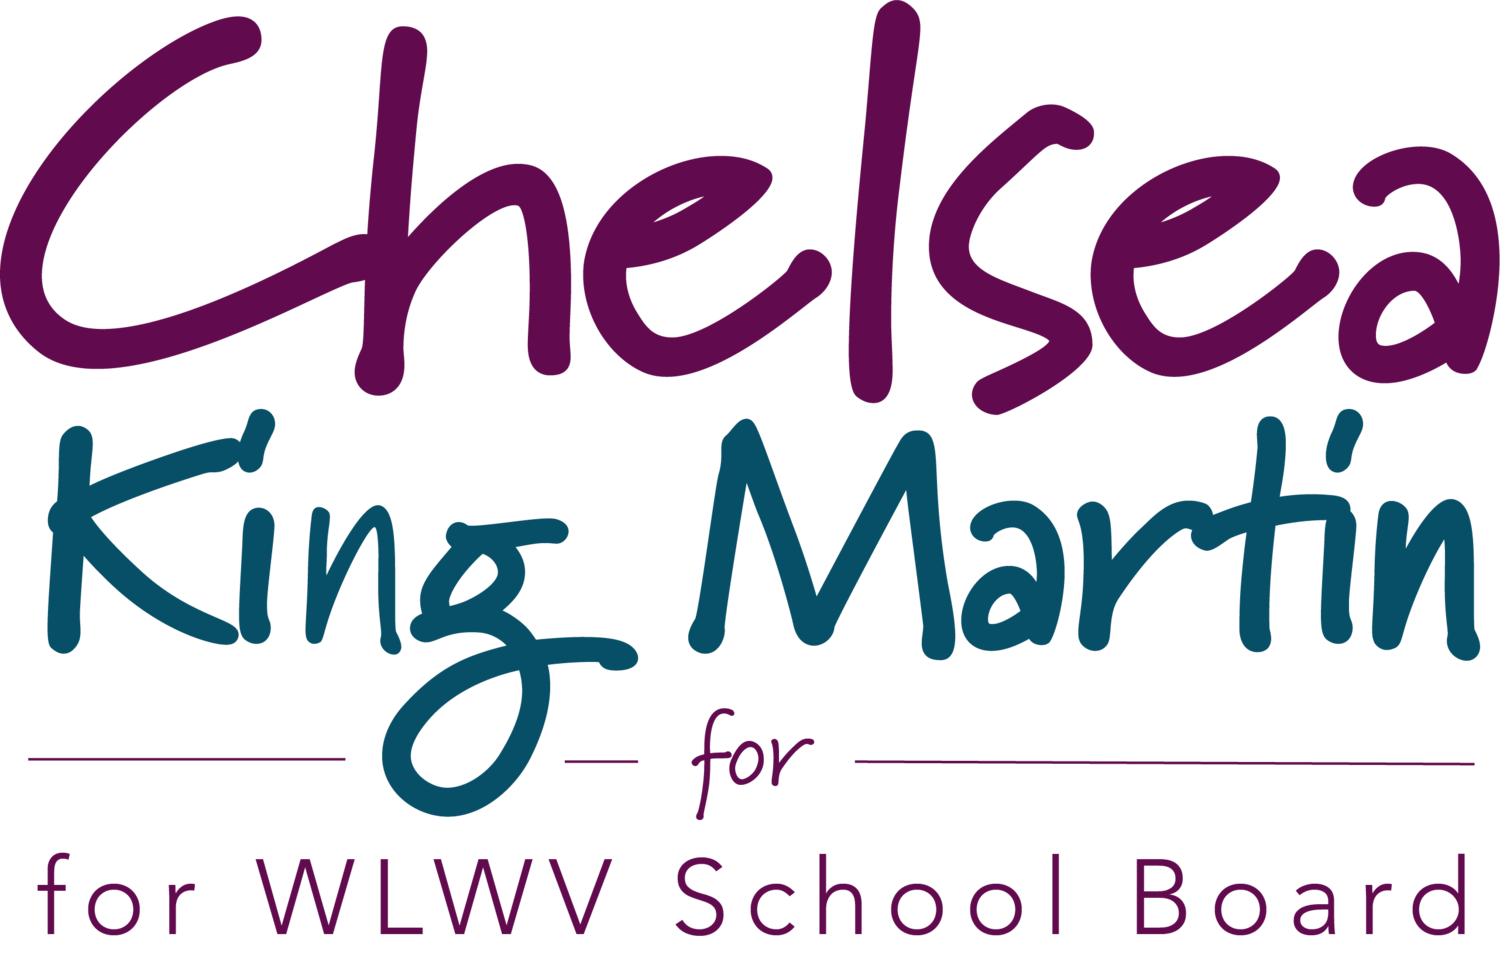 Chelsea for WLWV Schools